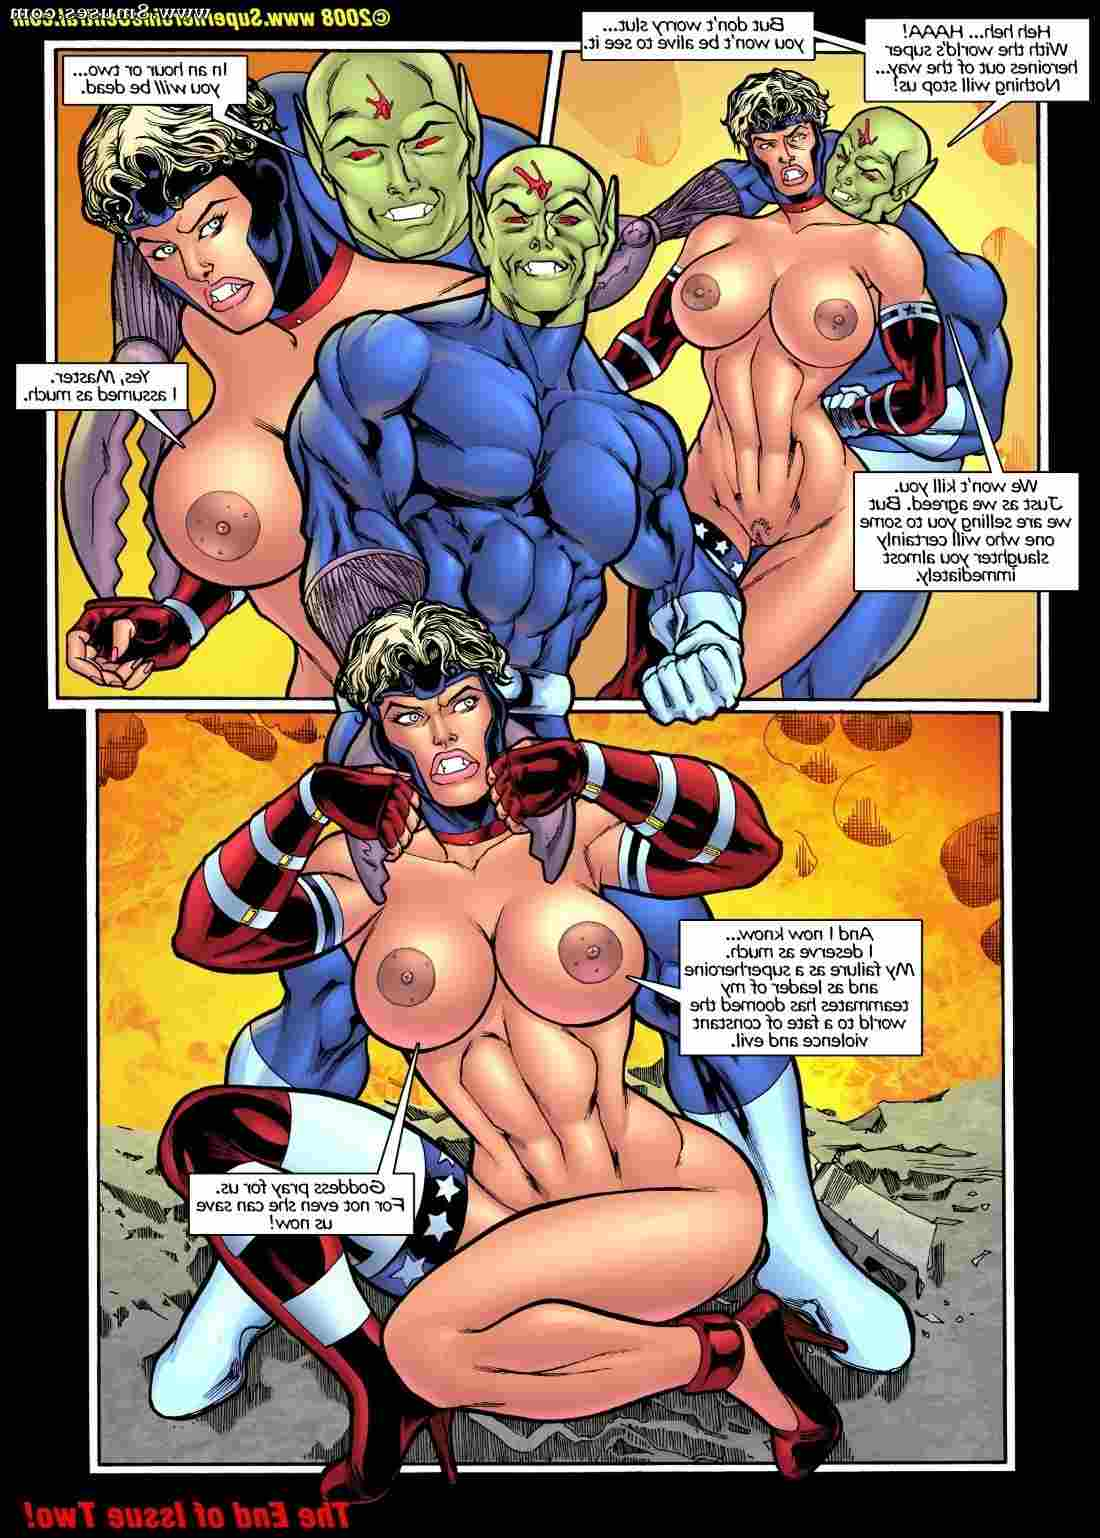 SuperHeroineComixxx/Freedom-Stars-in-Cream-of-the-Crop Freedom_Stars_in_Cream_of_the_Crop__8muses_-_Sex_and_Porn_Comics_75.jpg